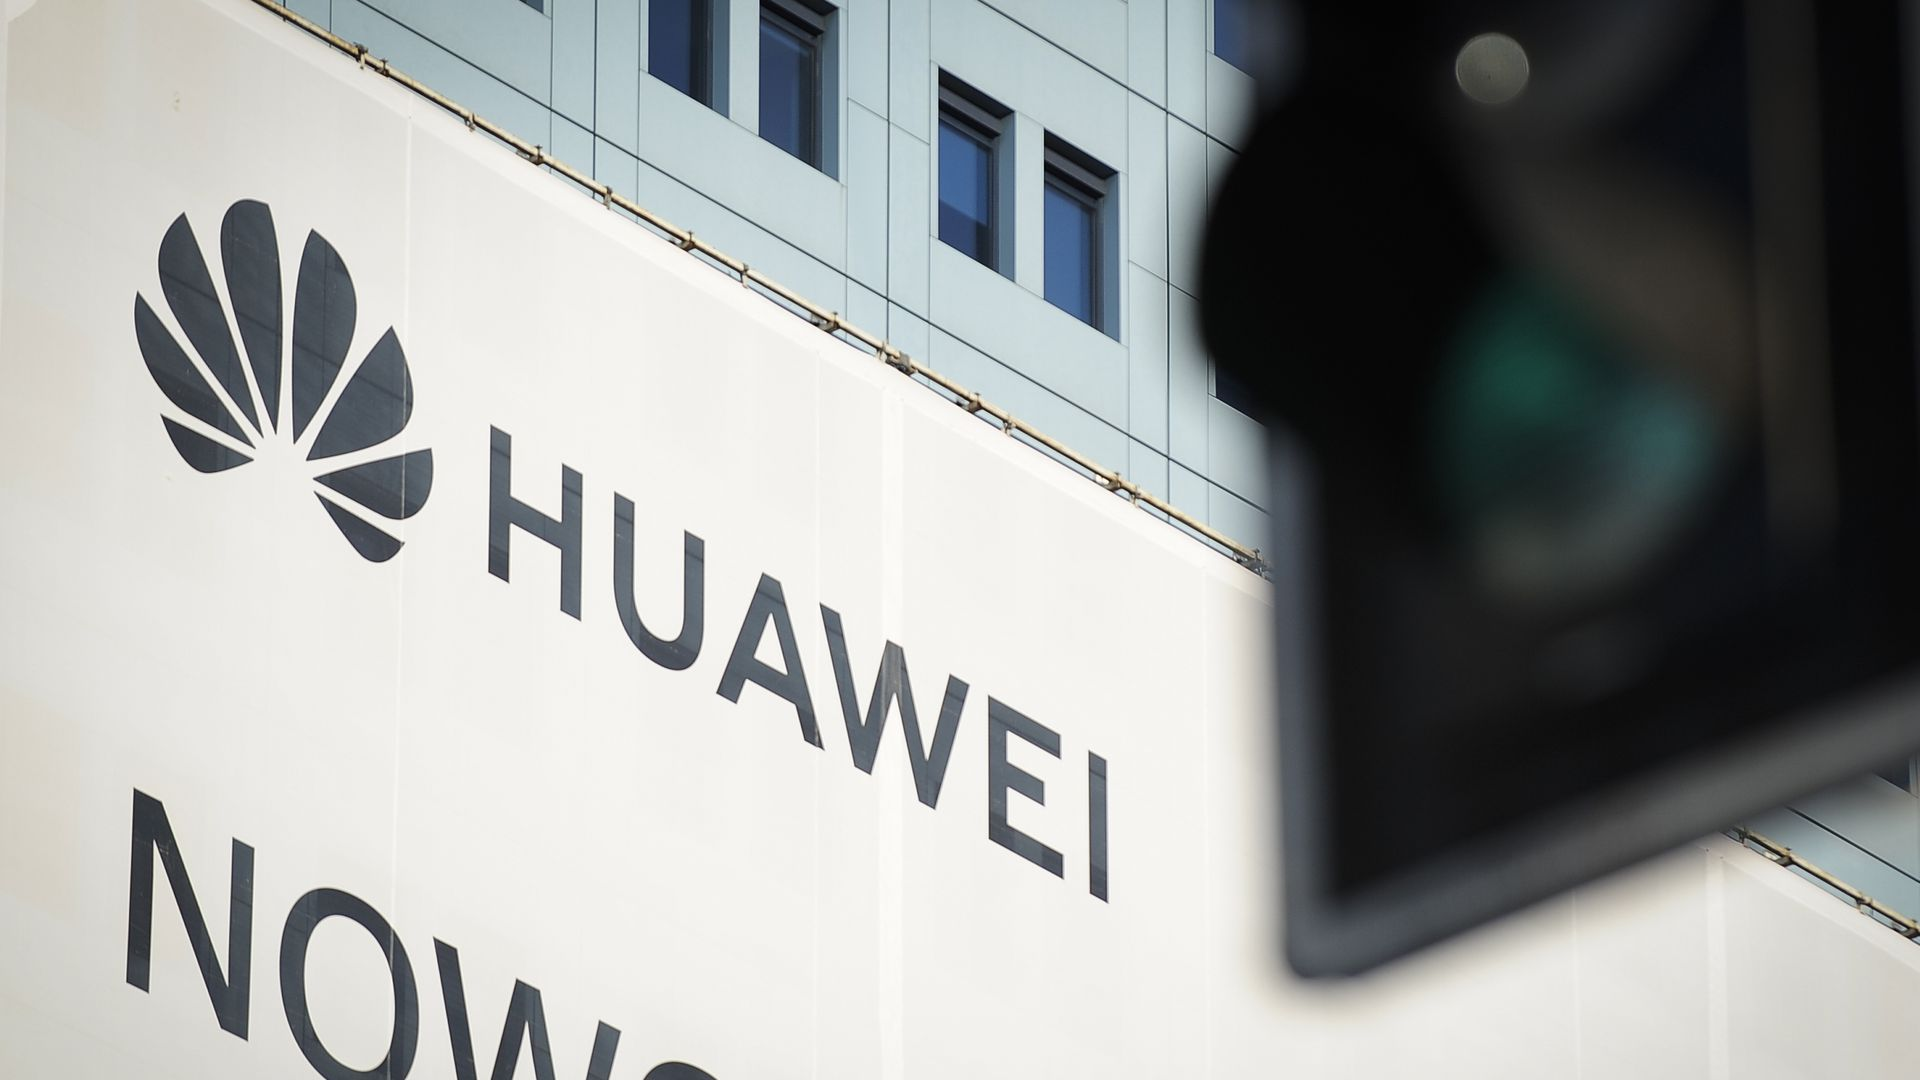 A sign with the Huawei logo